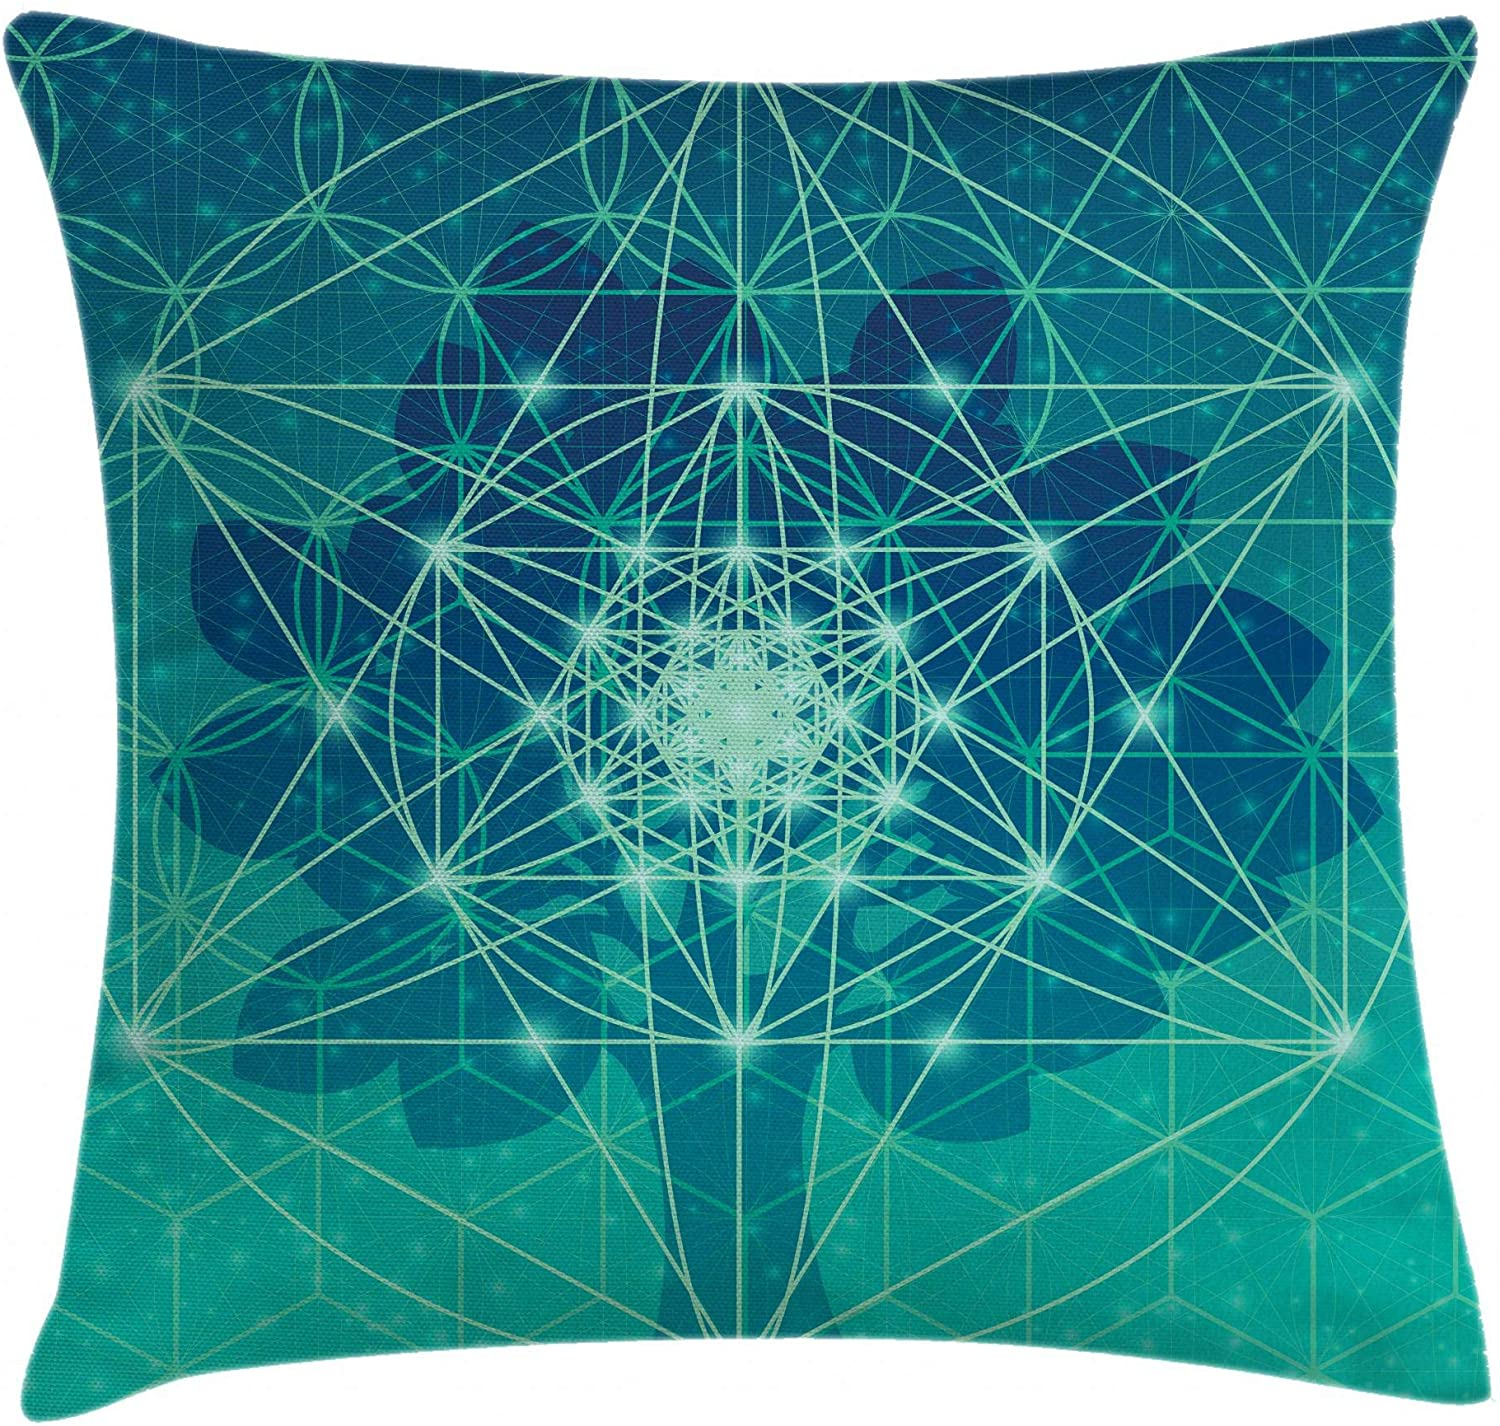 Ambesonne Geometry Throw Pillow Cushion Cover, Digital Futuristic Tree of Life with Space Plains Pattern, Decorative Square Accent Pillow Case, 18